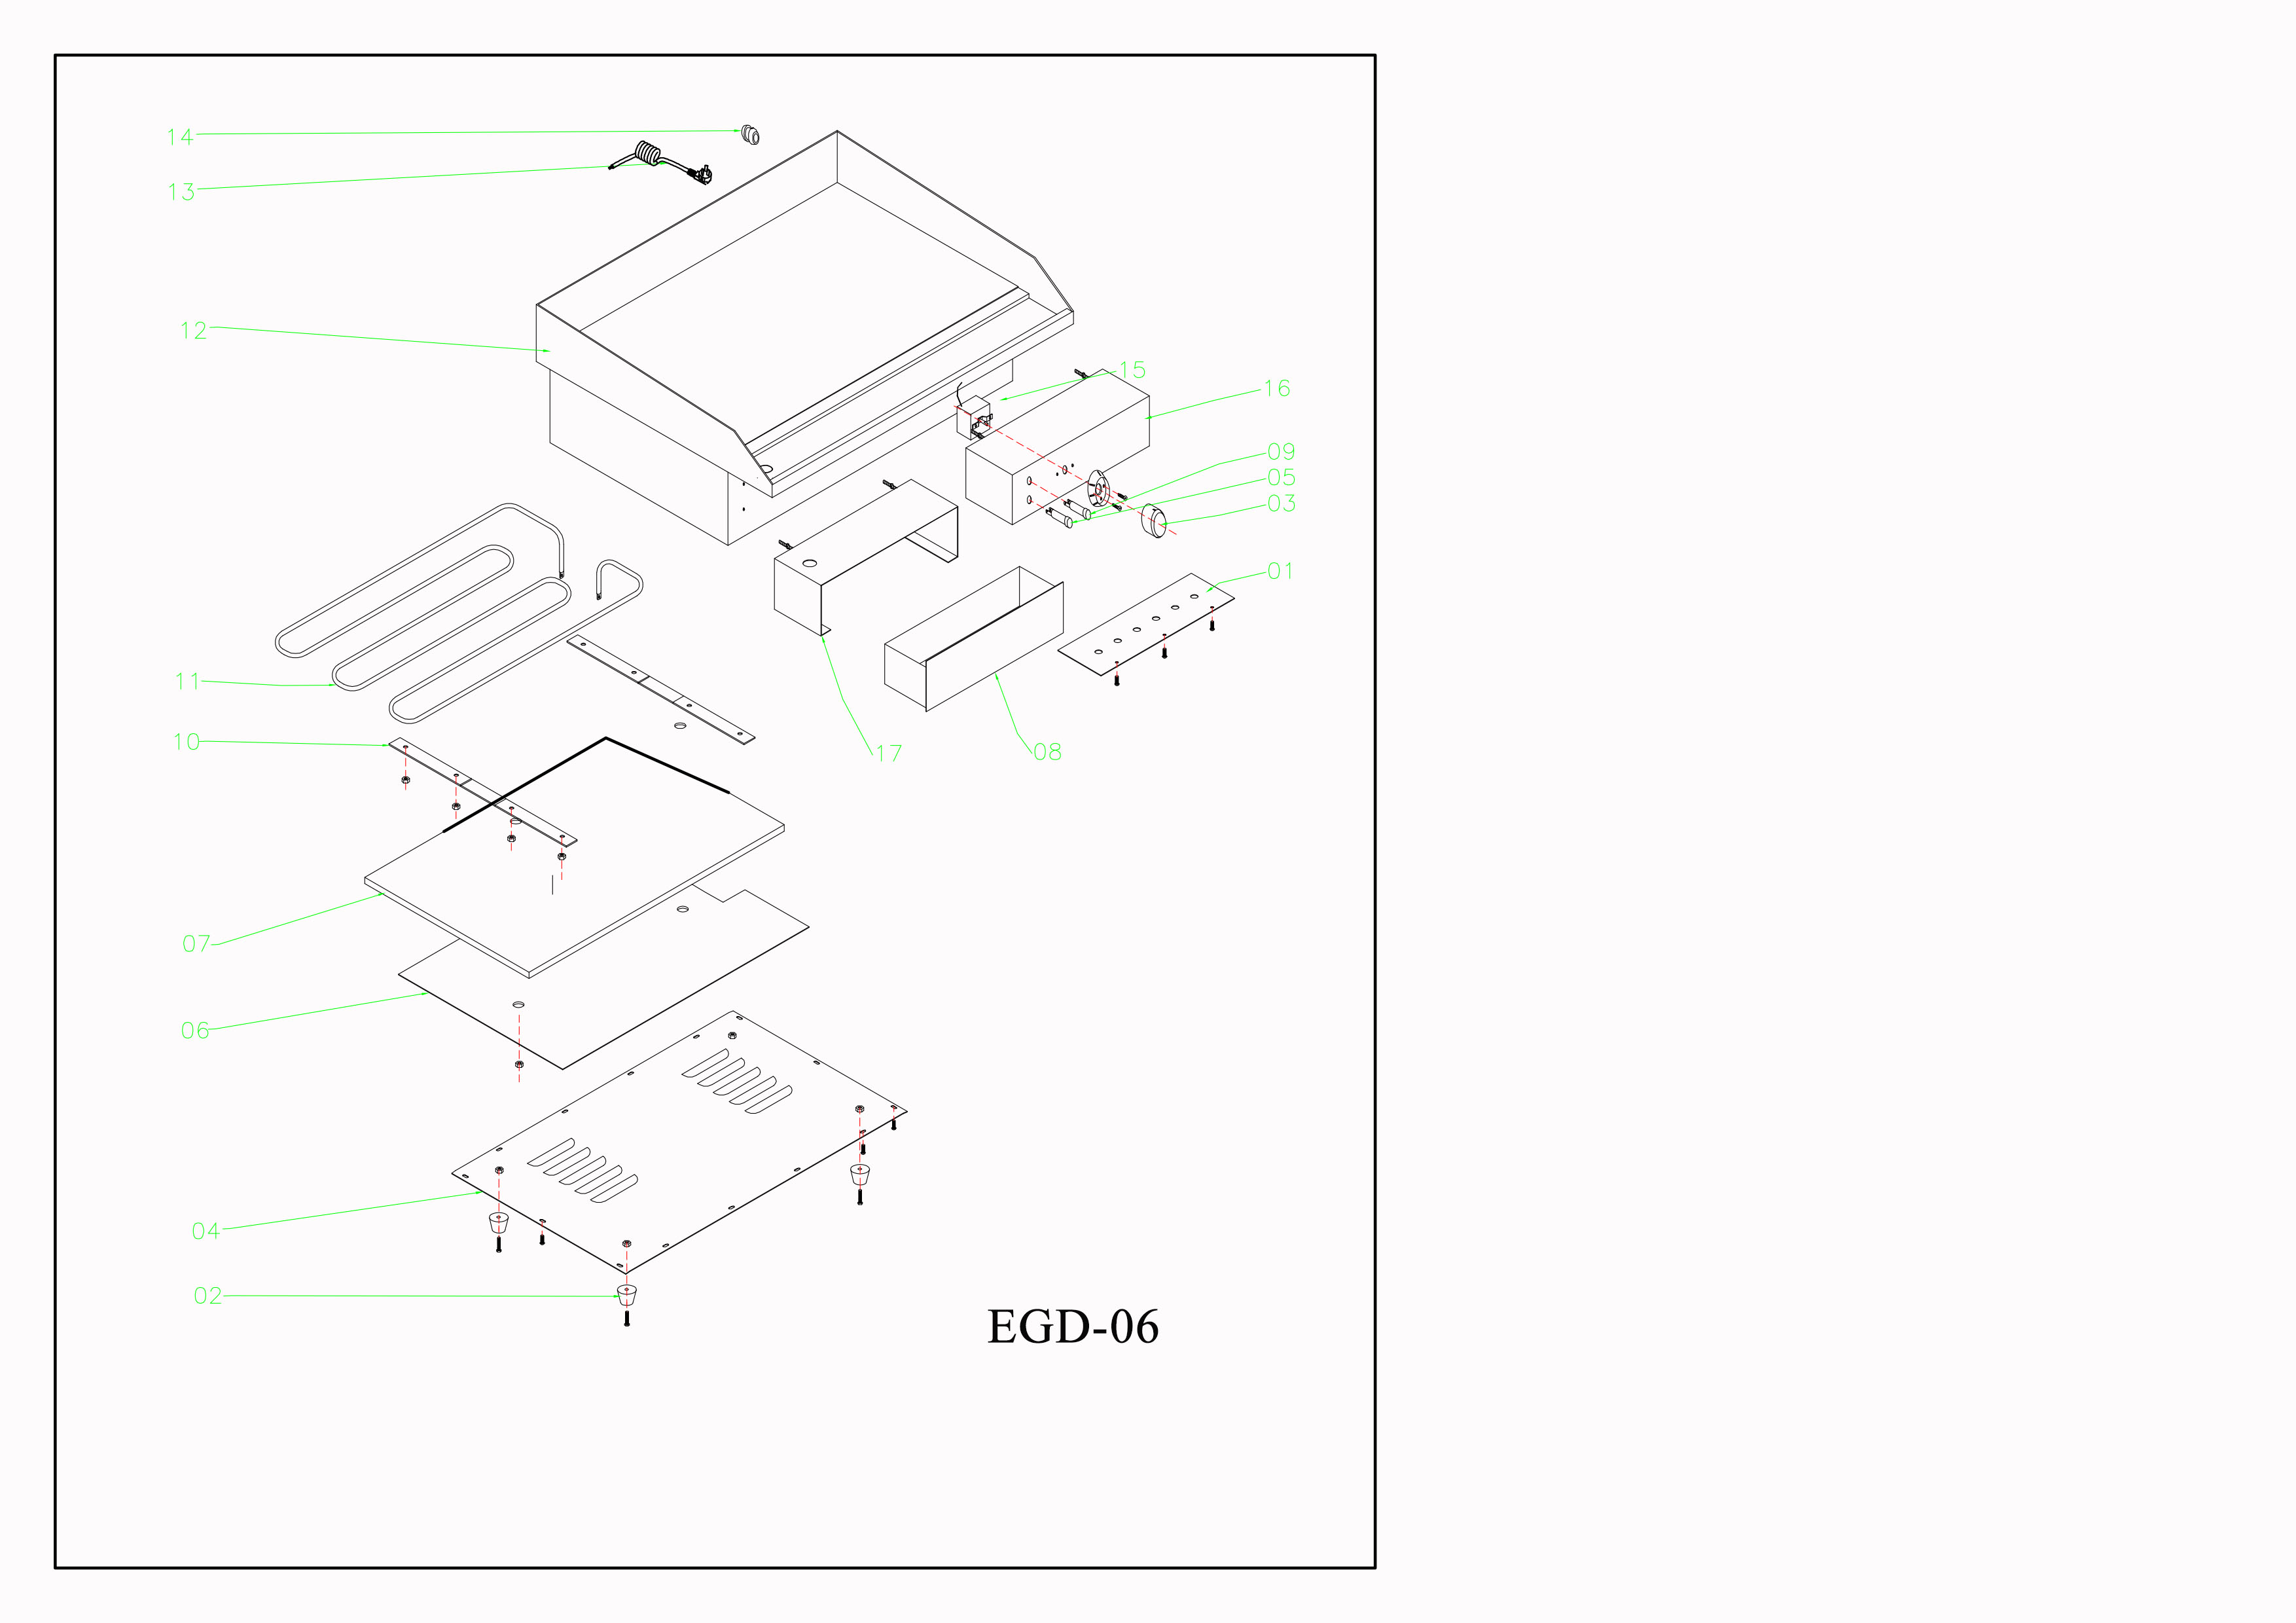 Professional Griddle Electric 520x400mm 3kW Smooth 1 zone